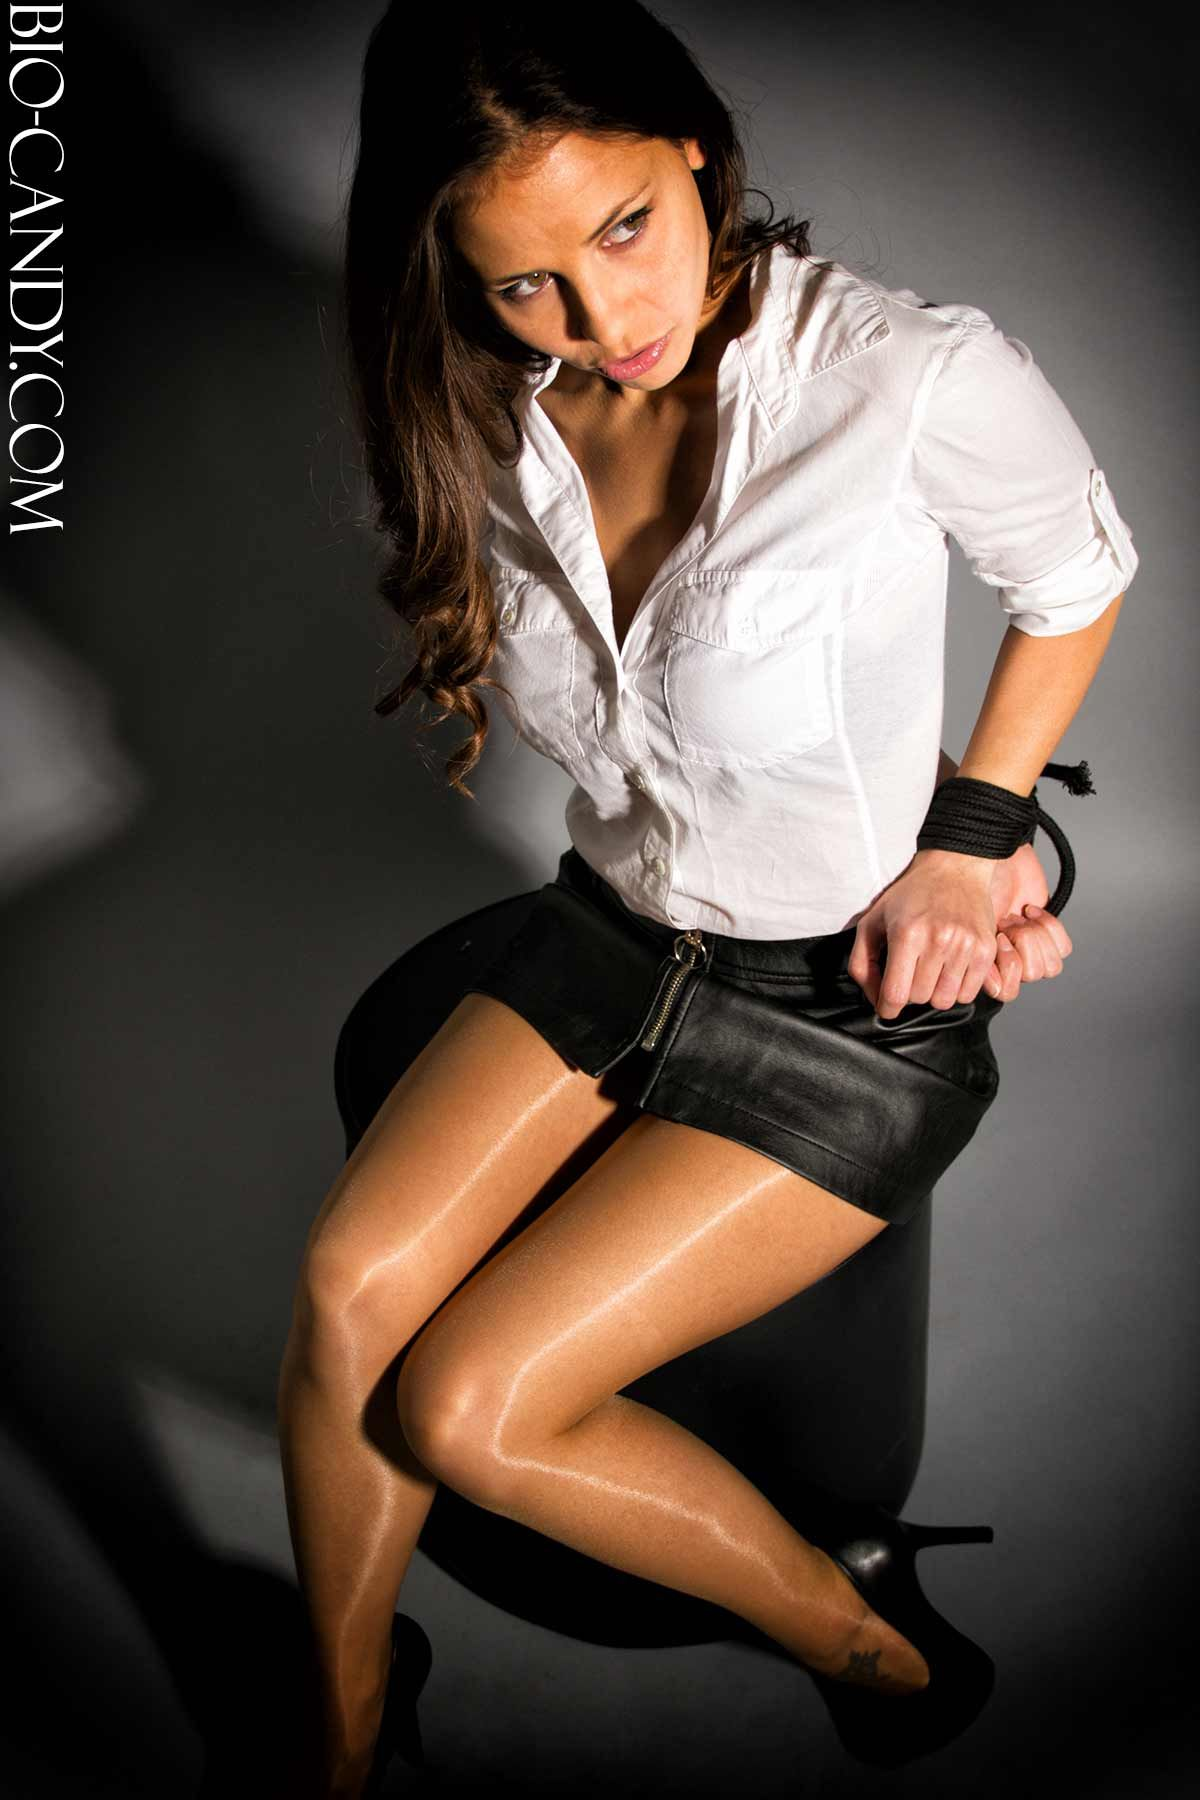 Cali Logan Bound In Leather Short Skirt And Shiny